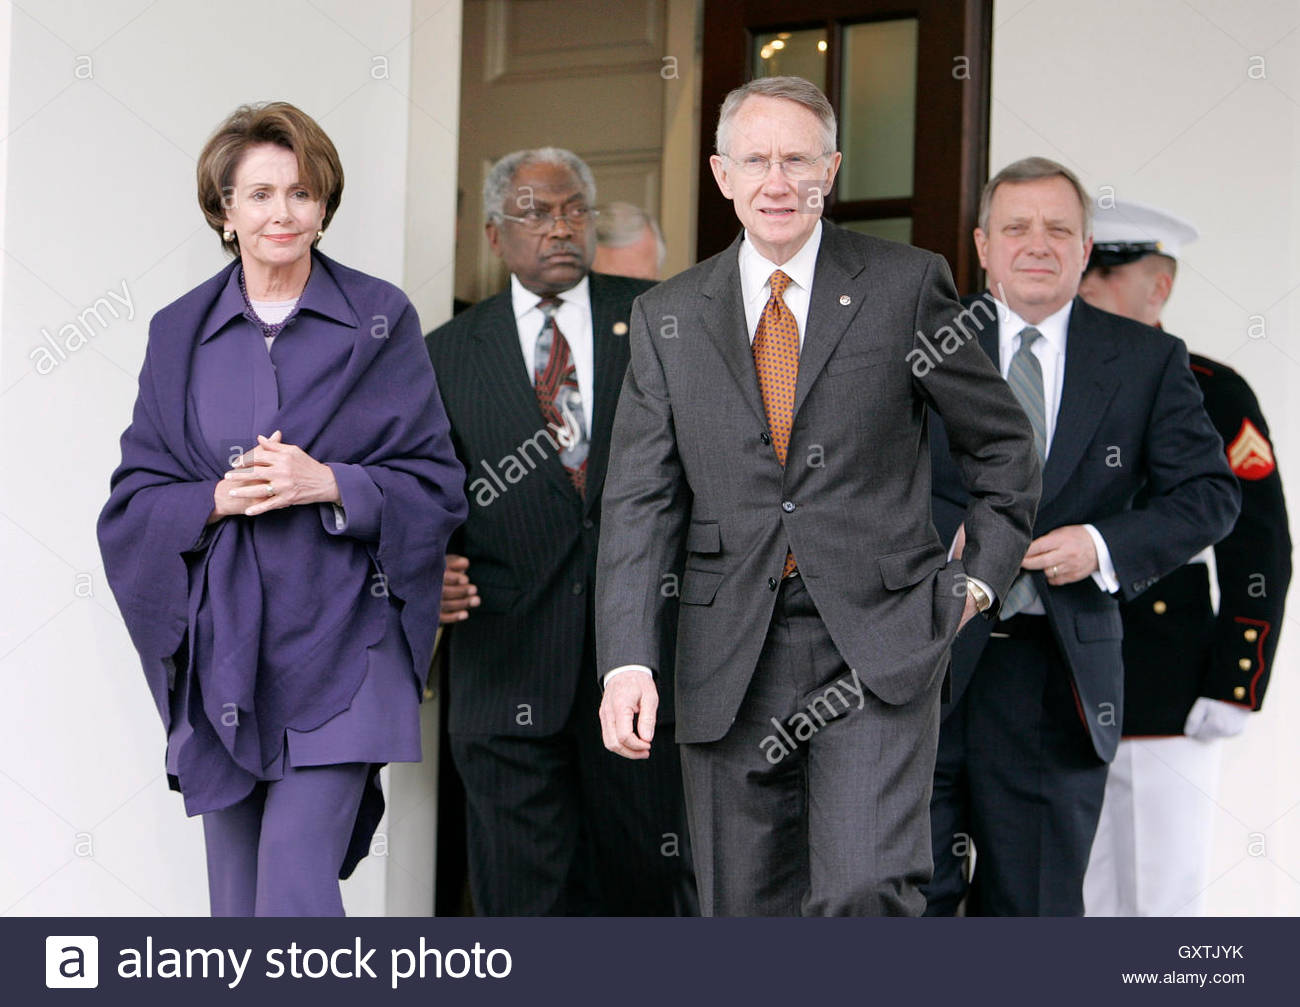 The Press Cabinet Democratic Congressional Leaders Walk Out To Speak To The Press